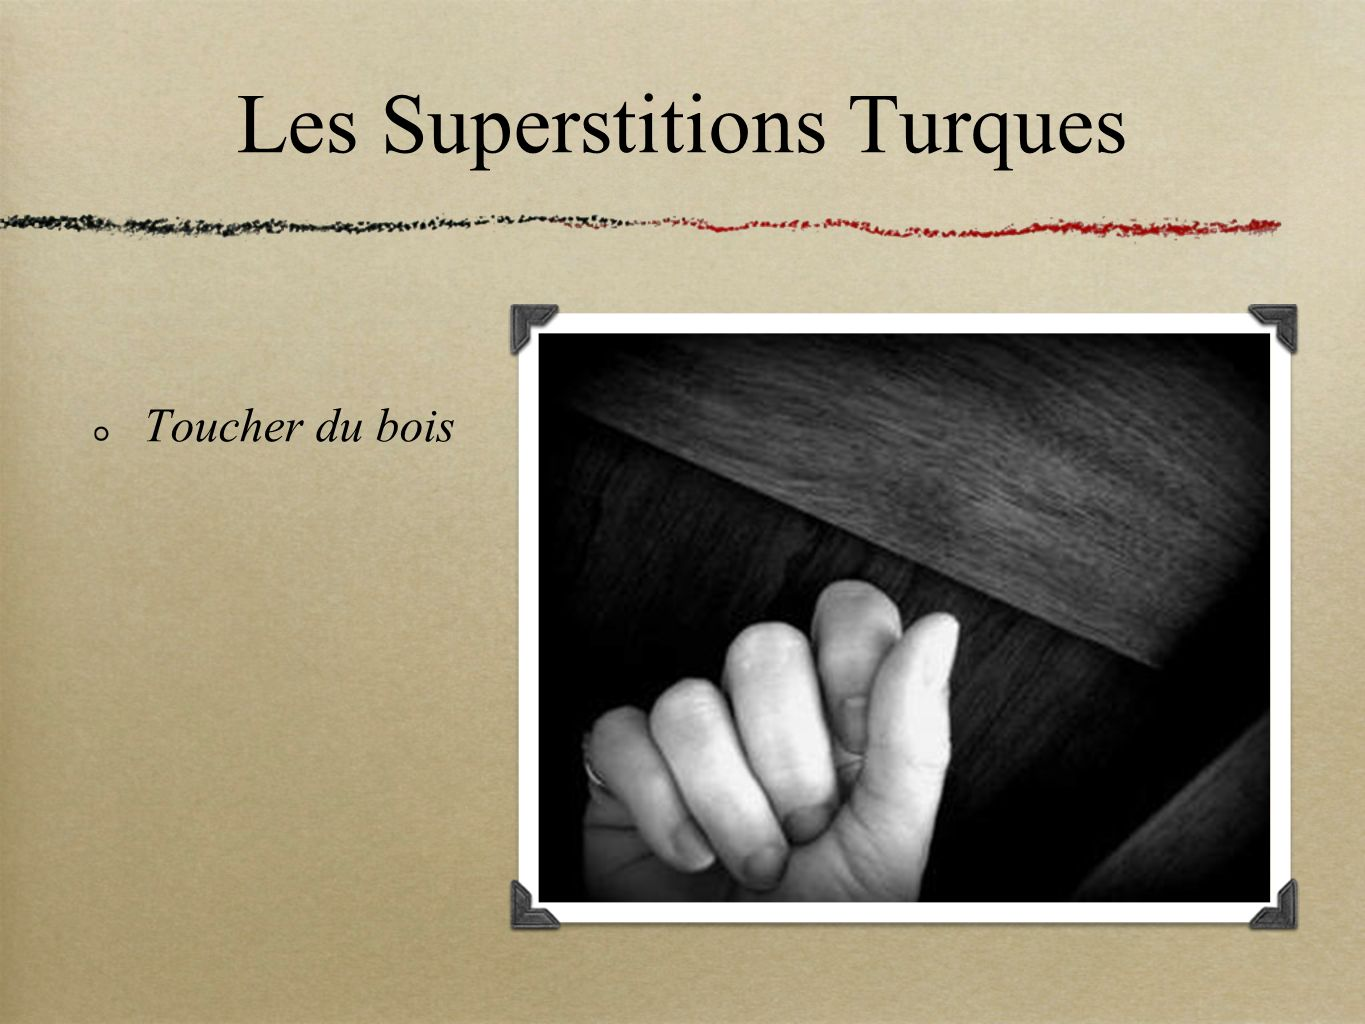 Les Superstitions Turques